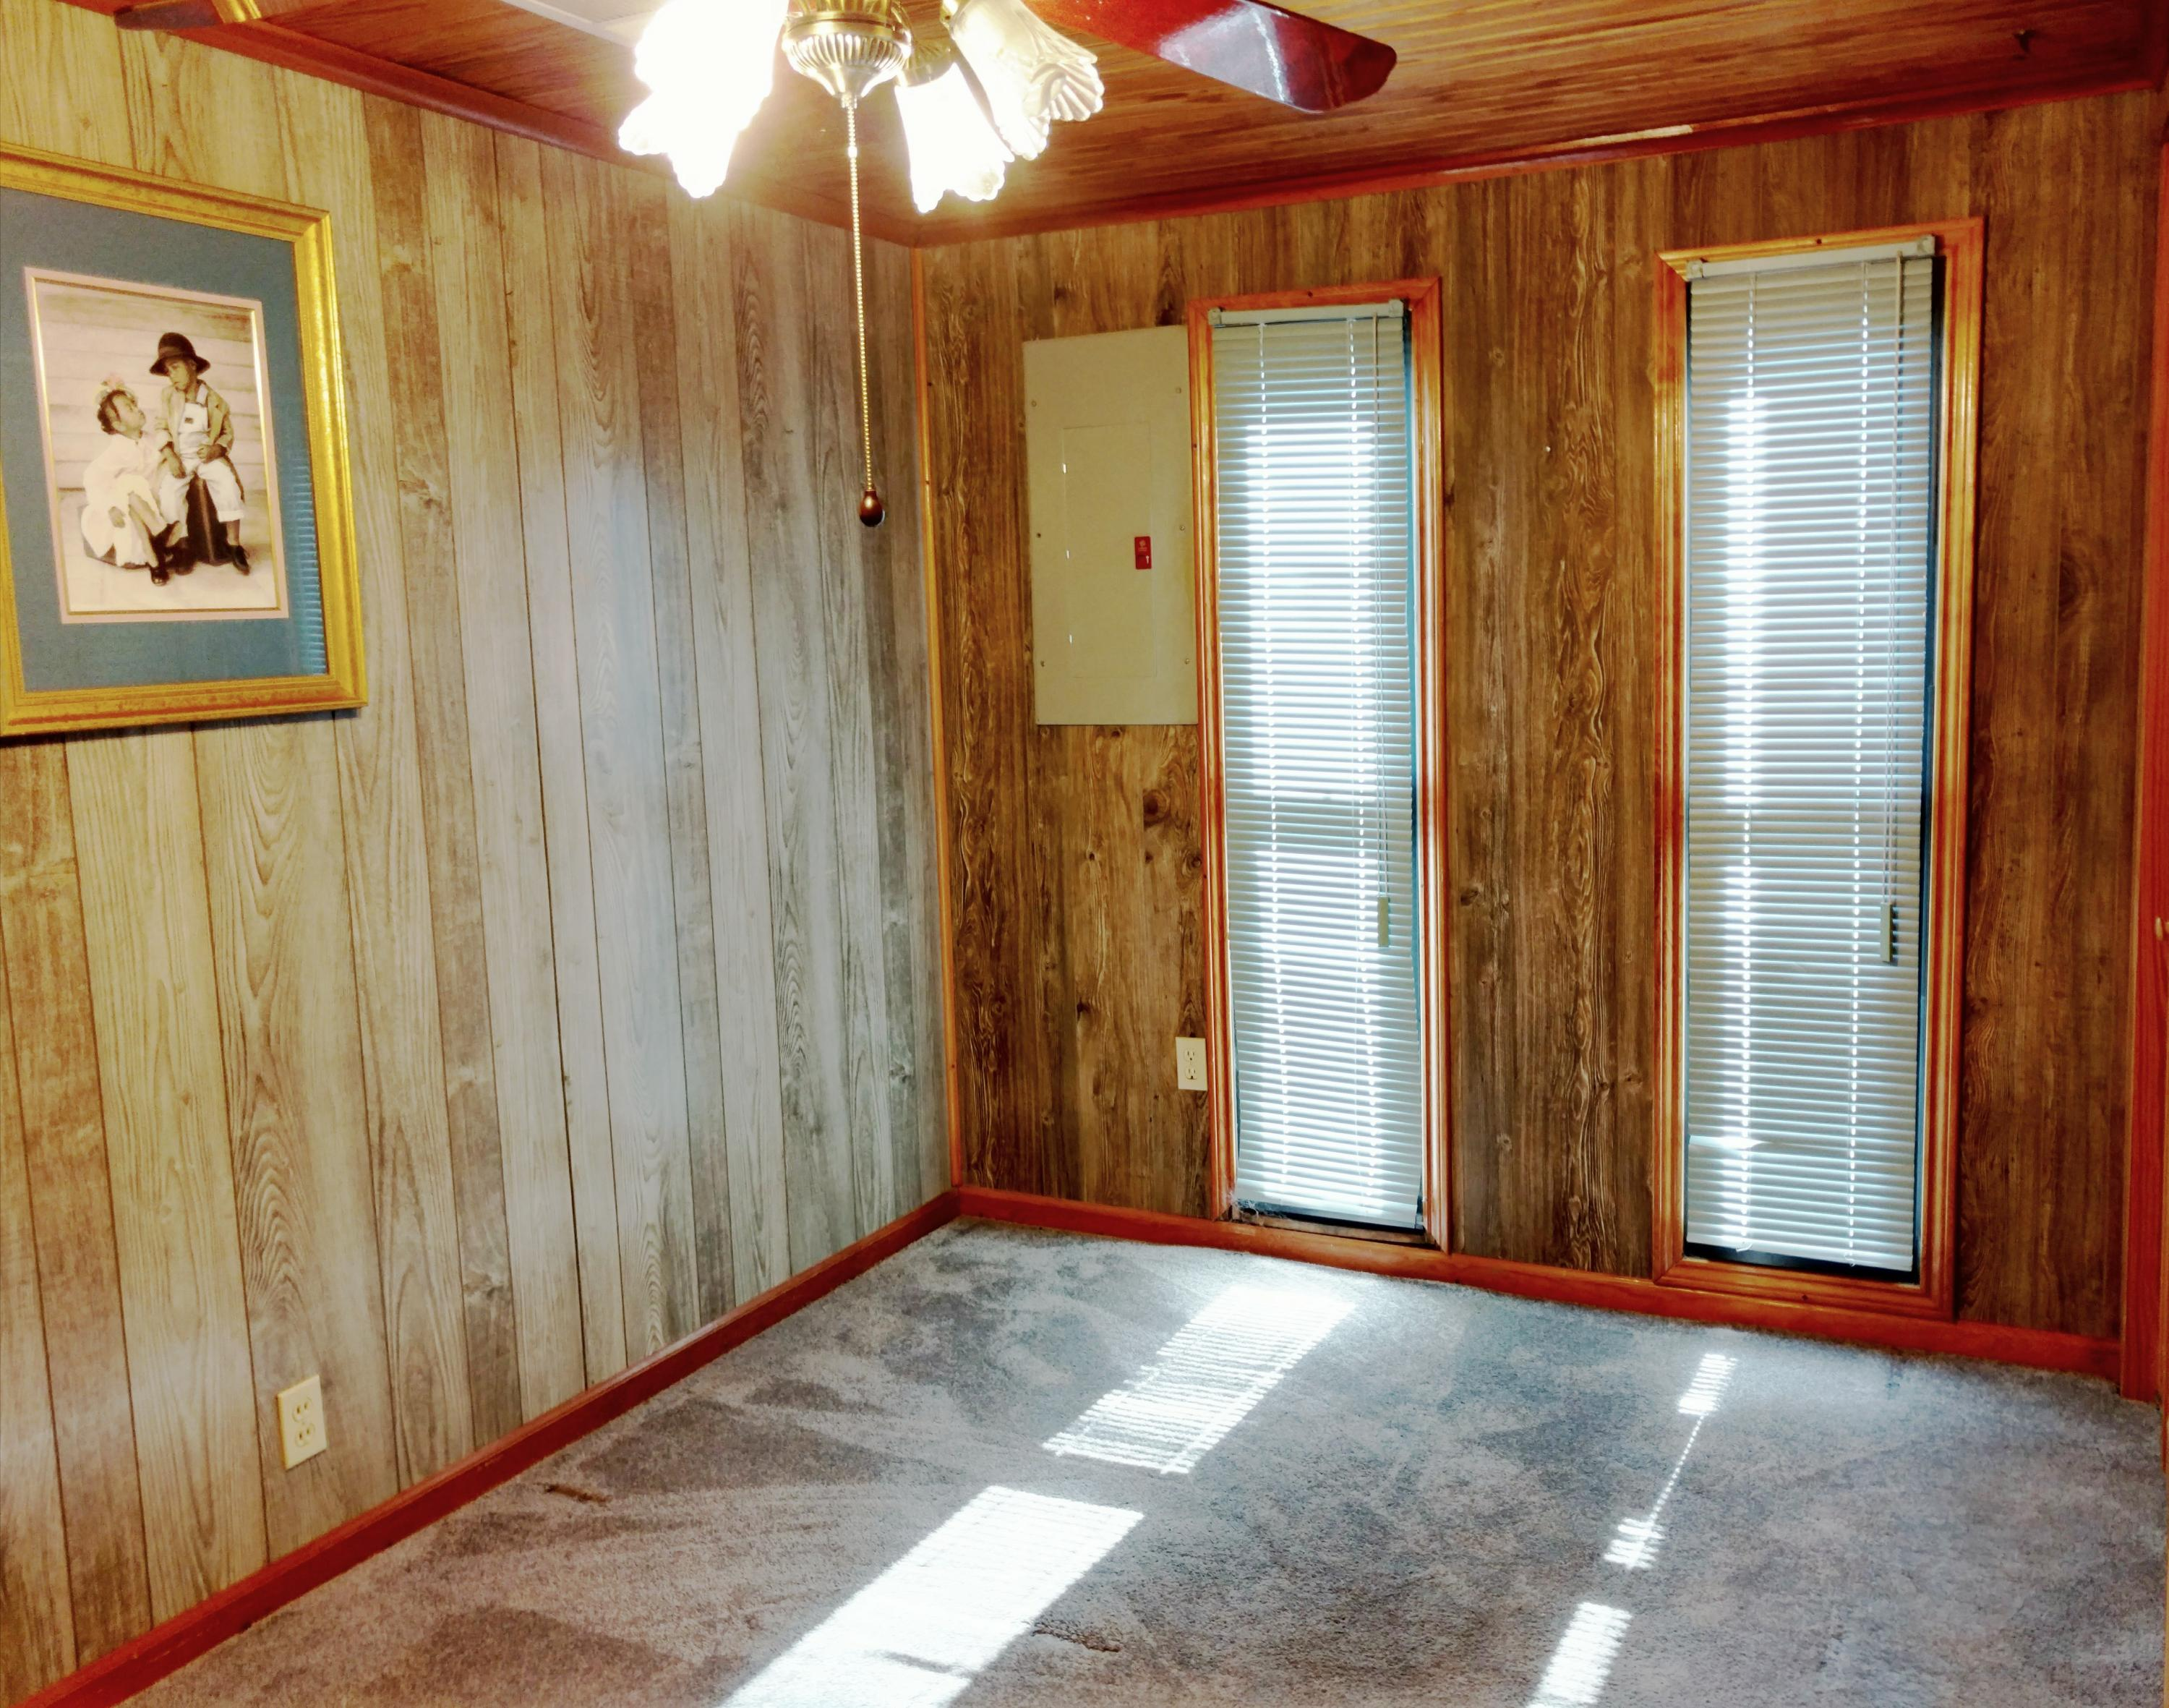 DeRidder home for sale, 178 Ponderosa Rd, DeRidder LA - $195,000